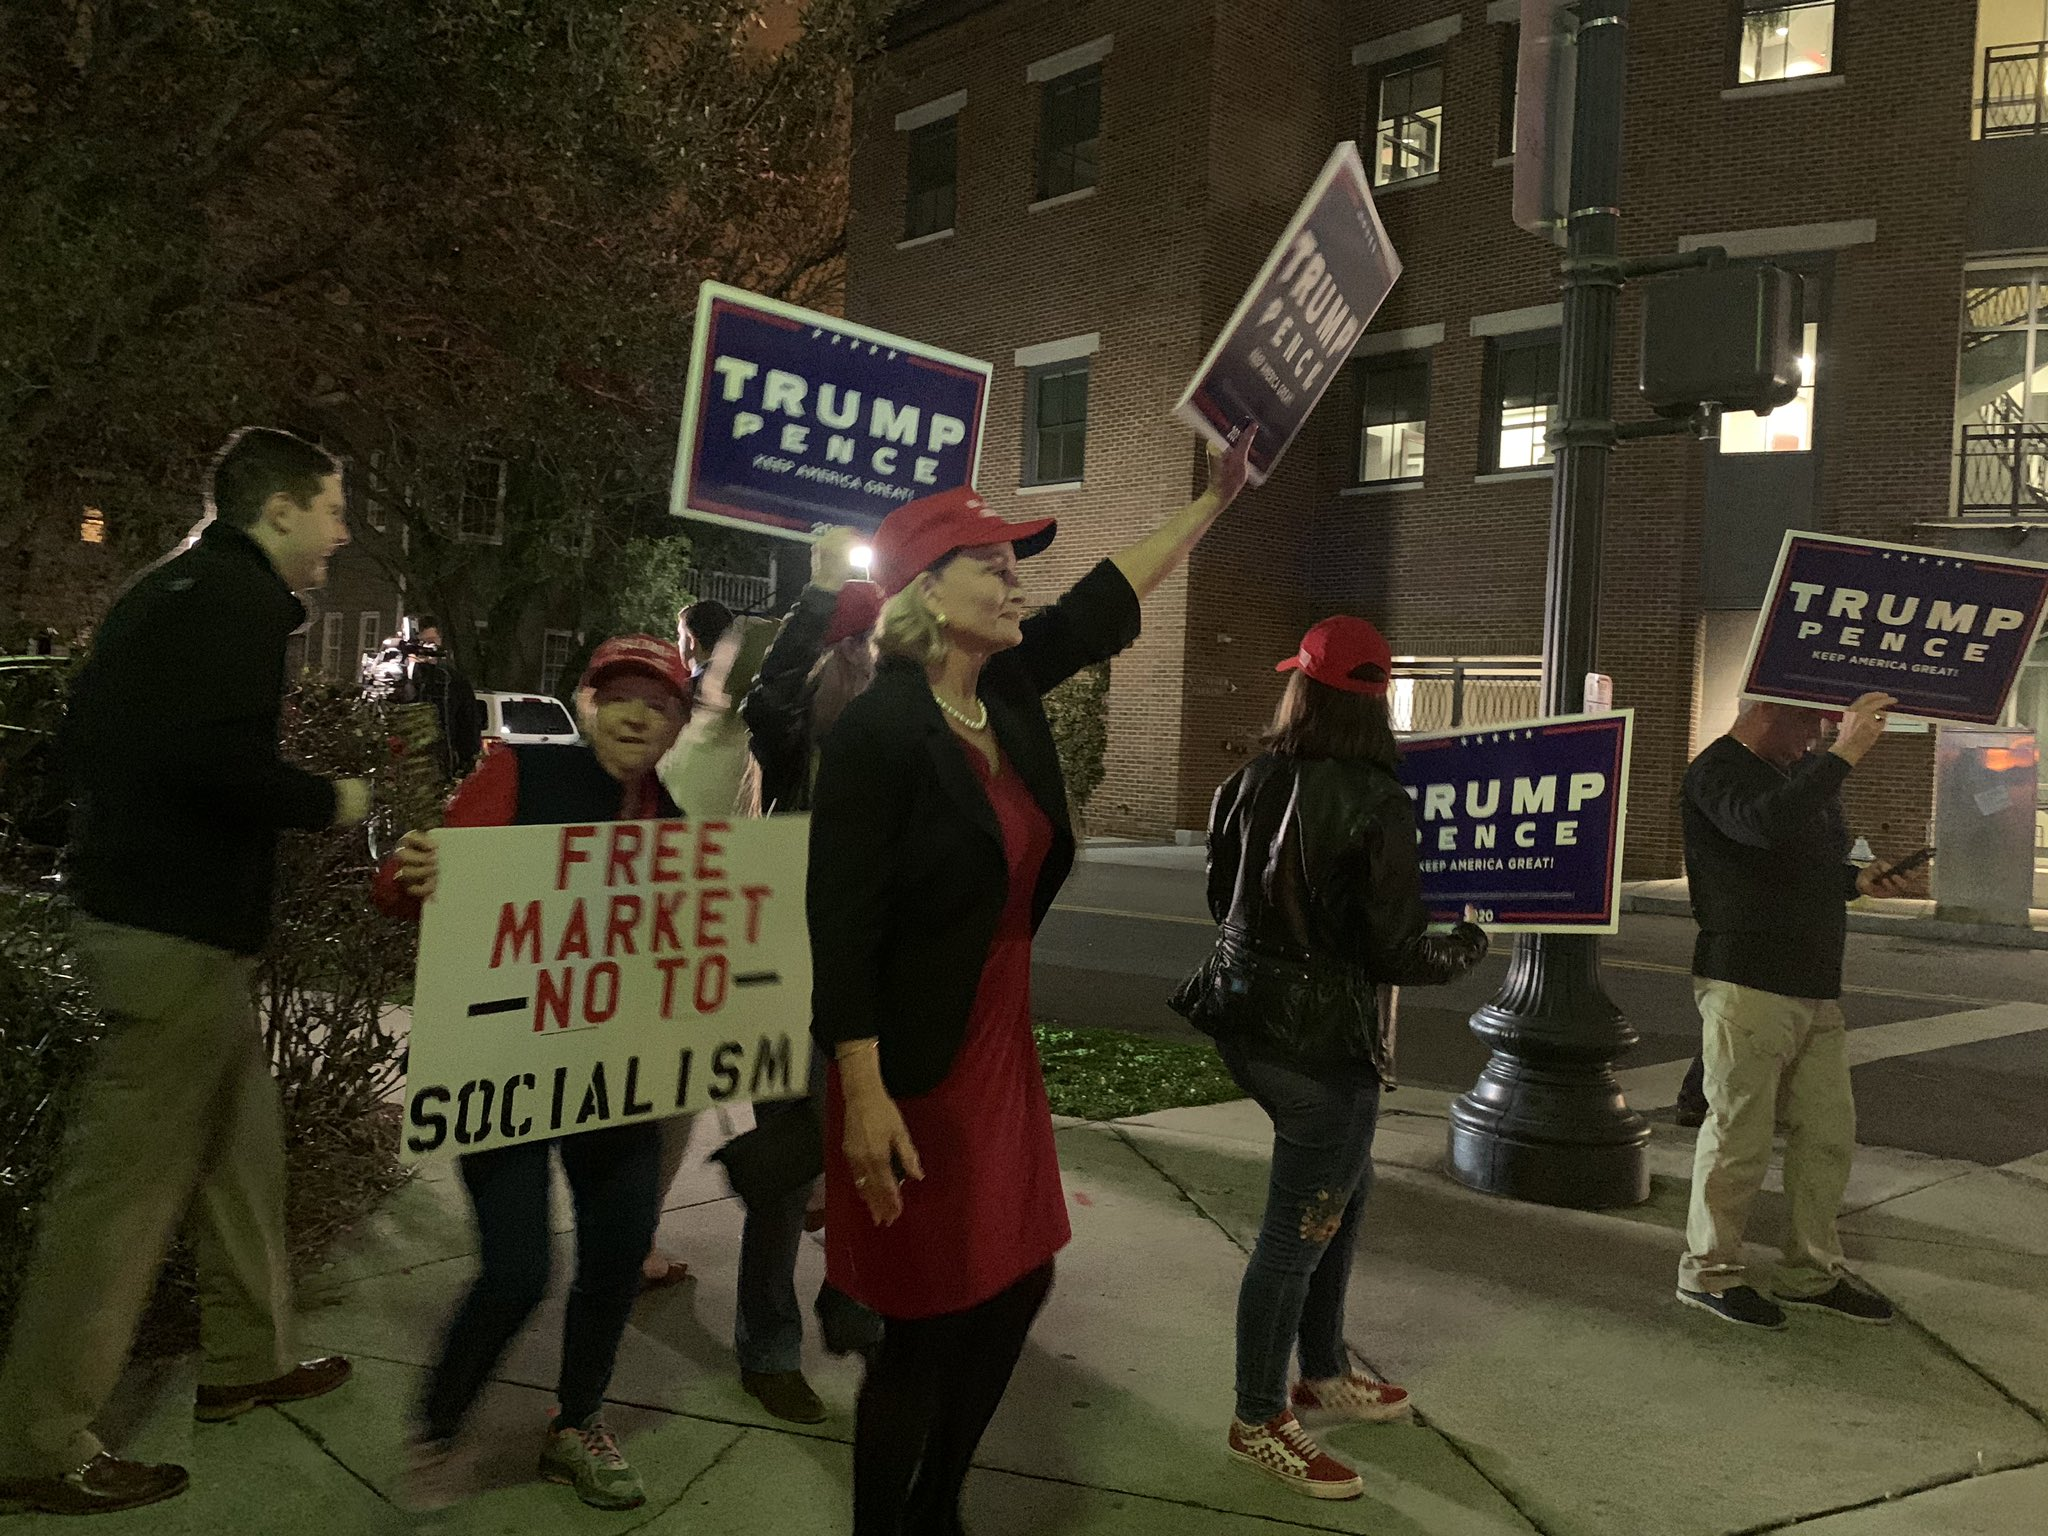 Trump supporters have made an appearance outside the Democratic debate site in Charleston